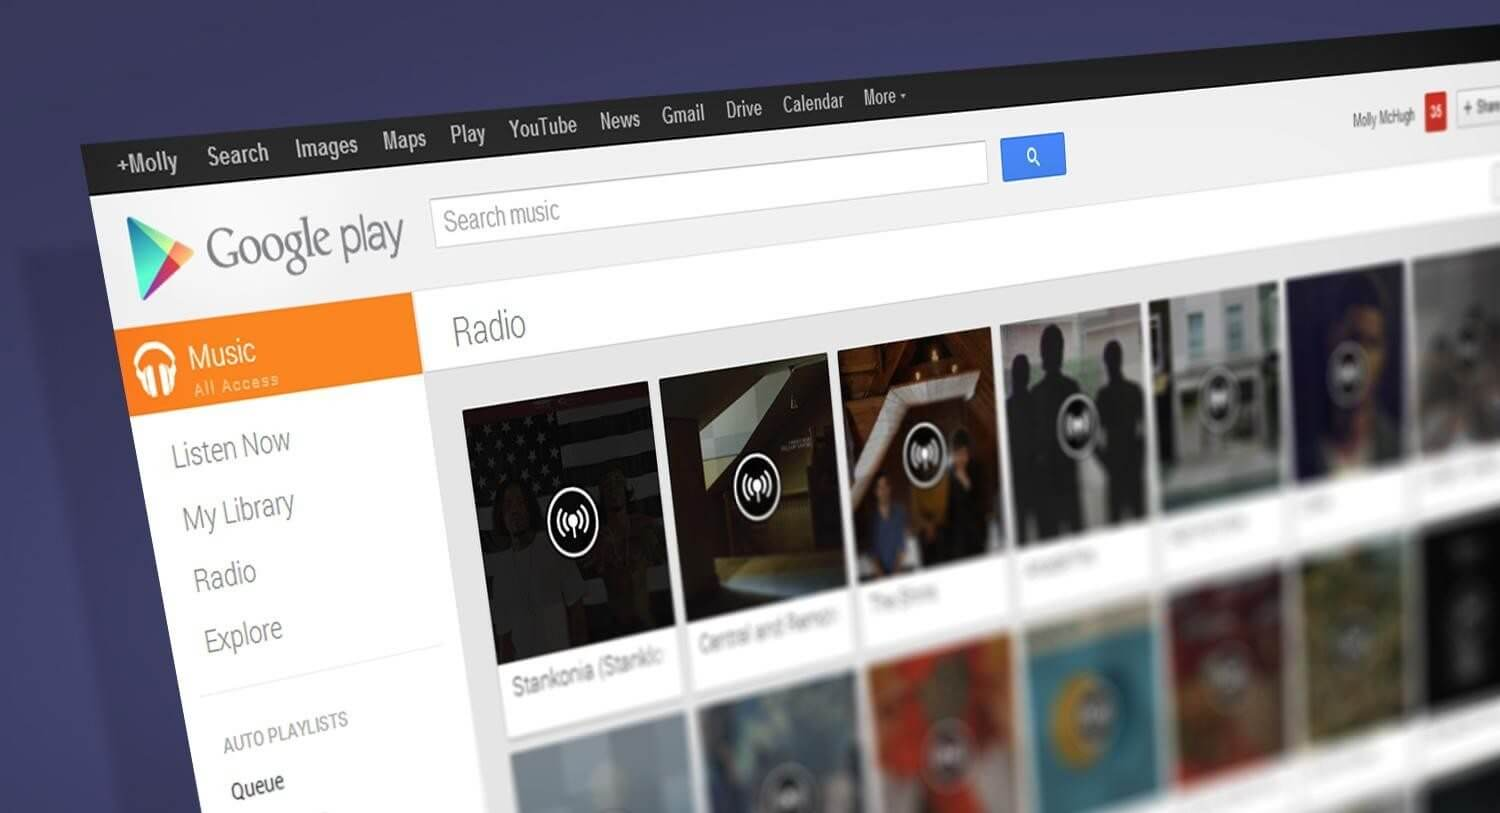 google-play-all-access-radio-hands-on-playlists